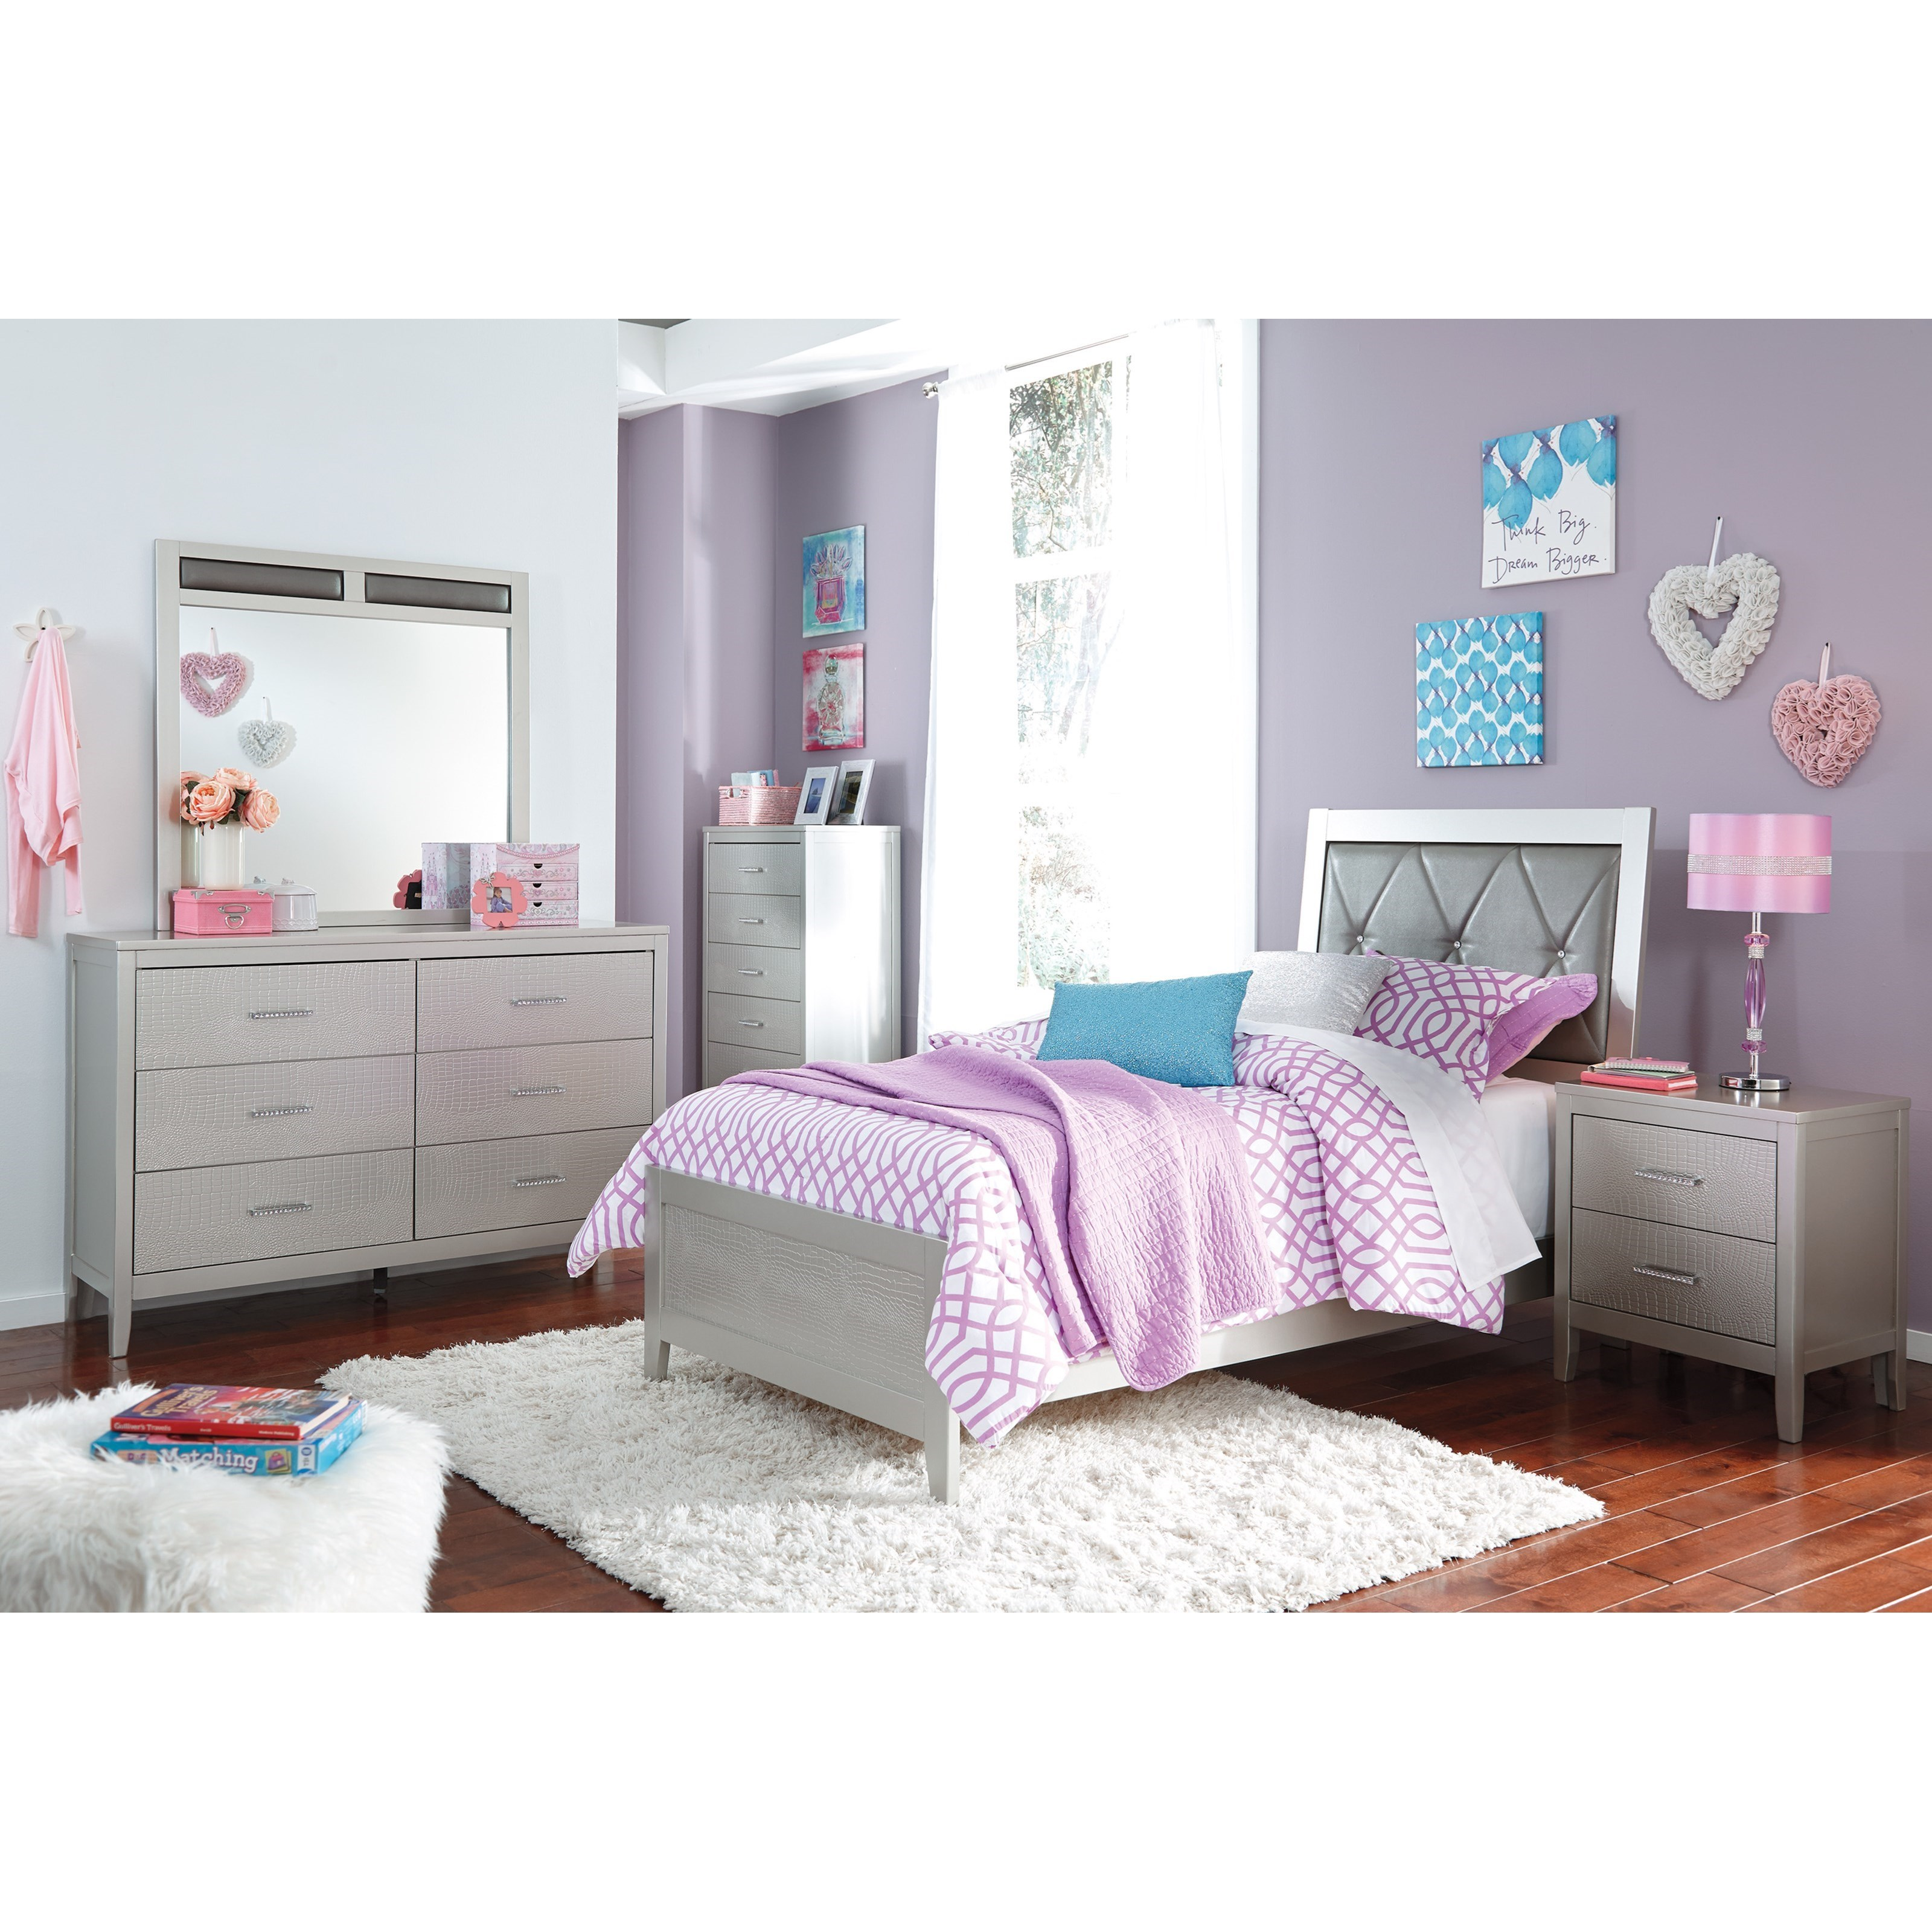 Signature design by ashley olivet glam twin bedroom group for Bedroom furniture groups